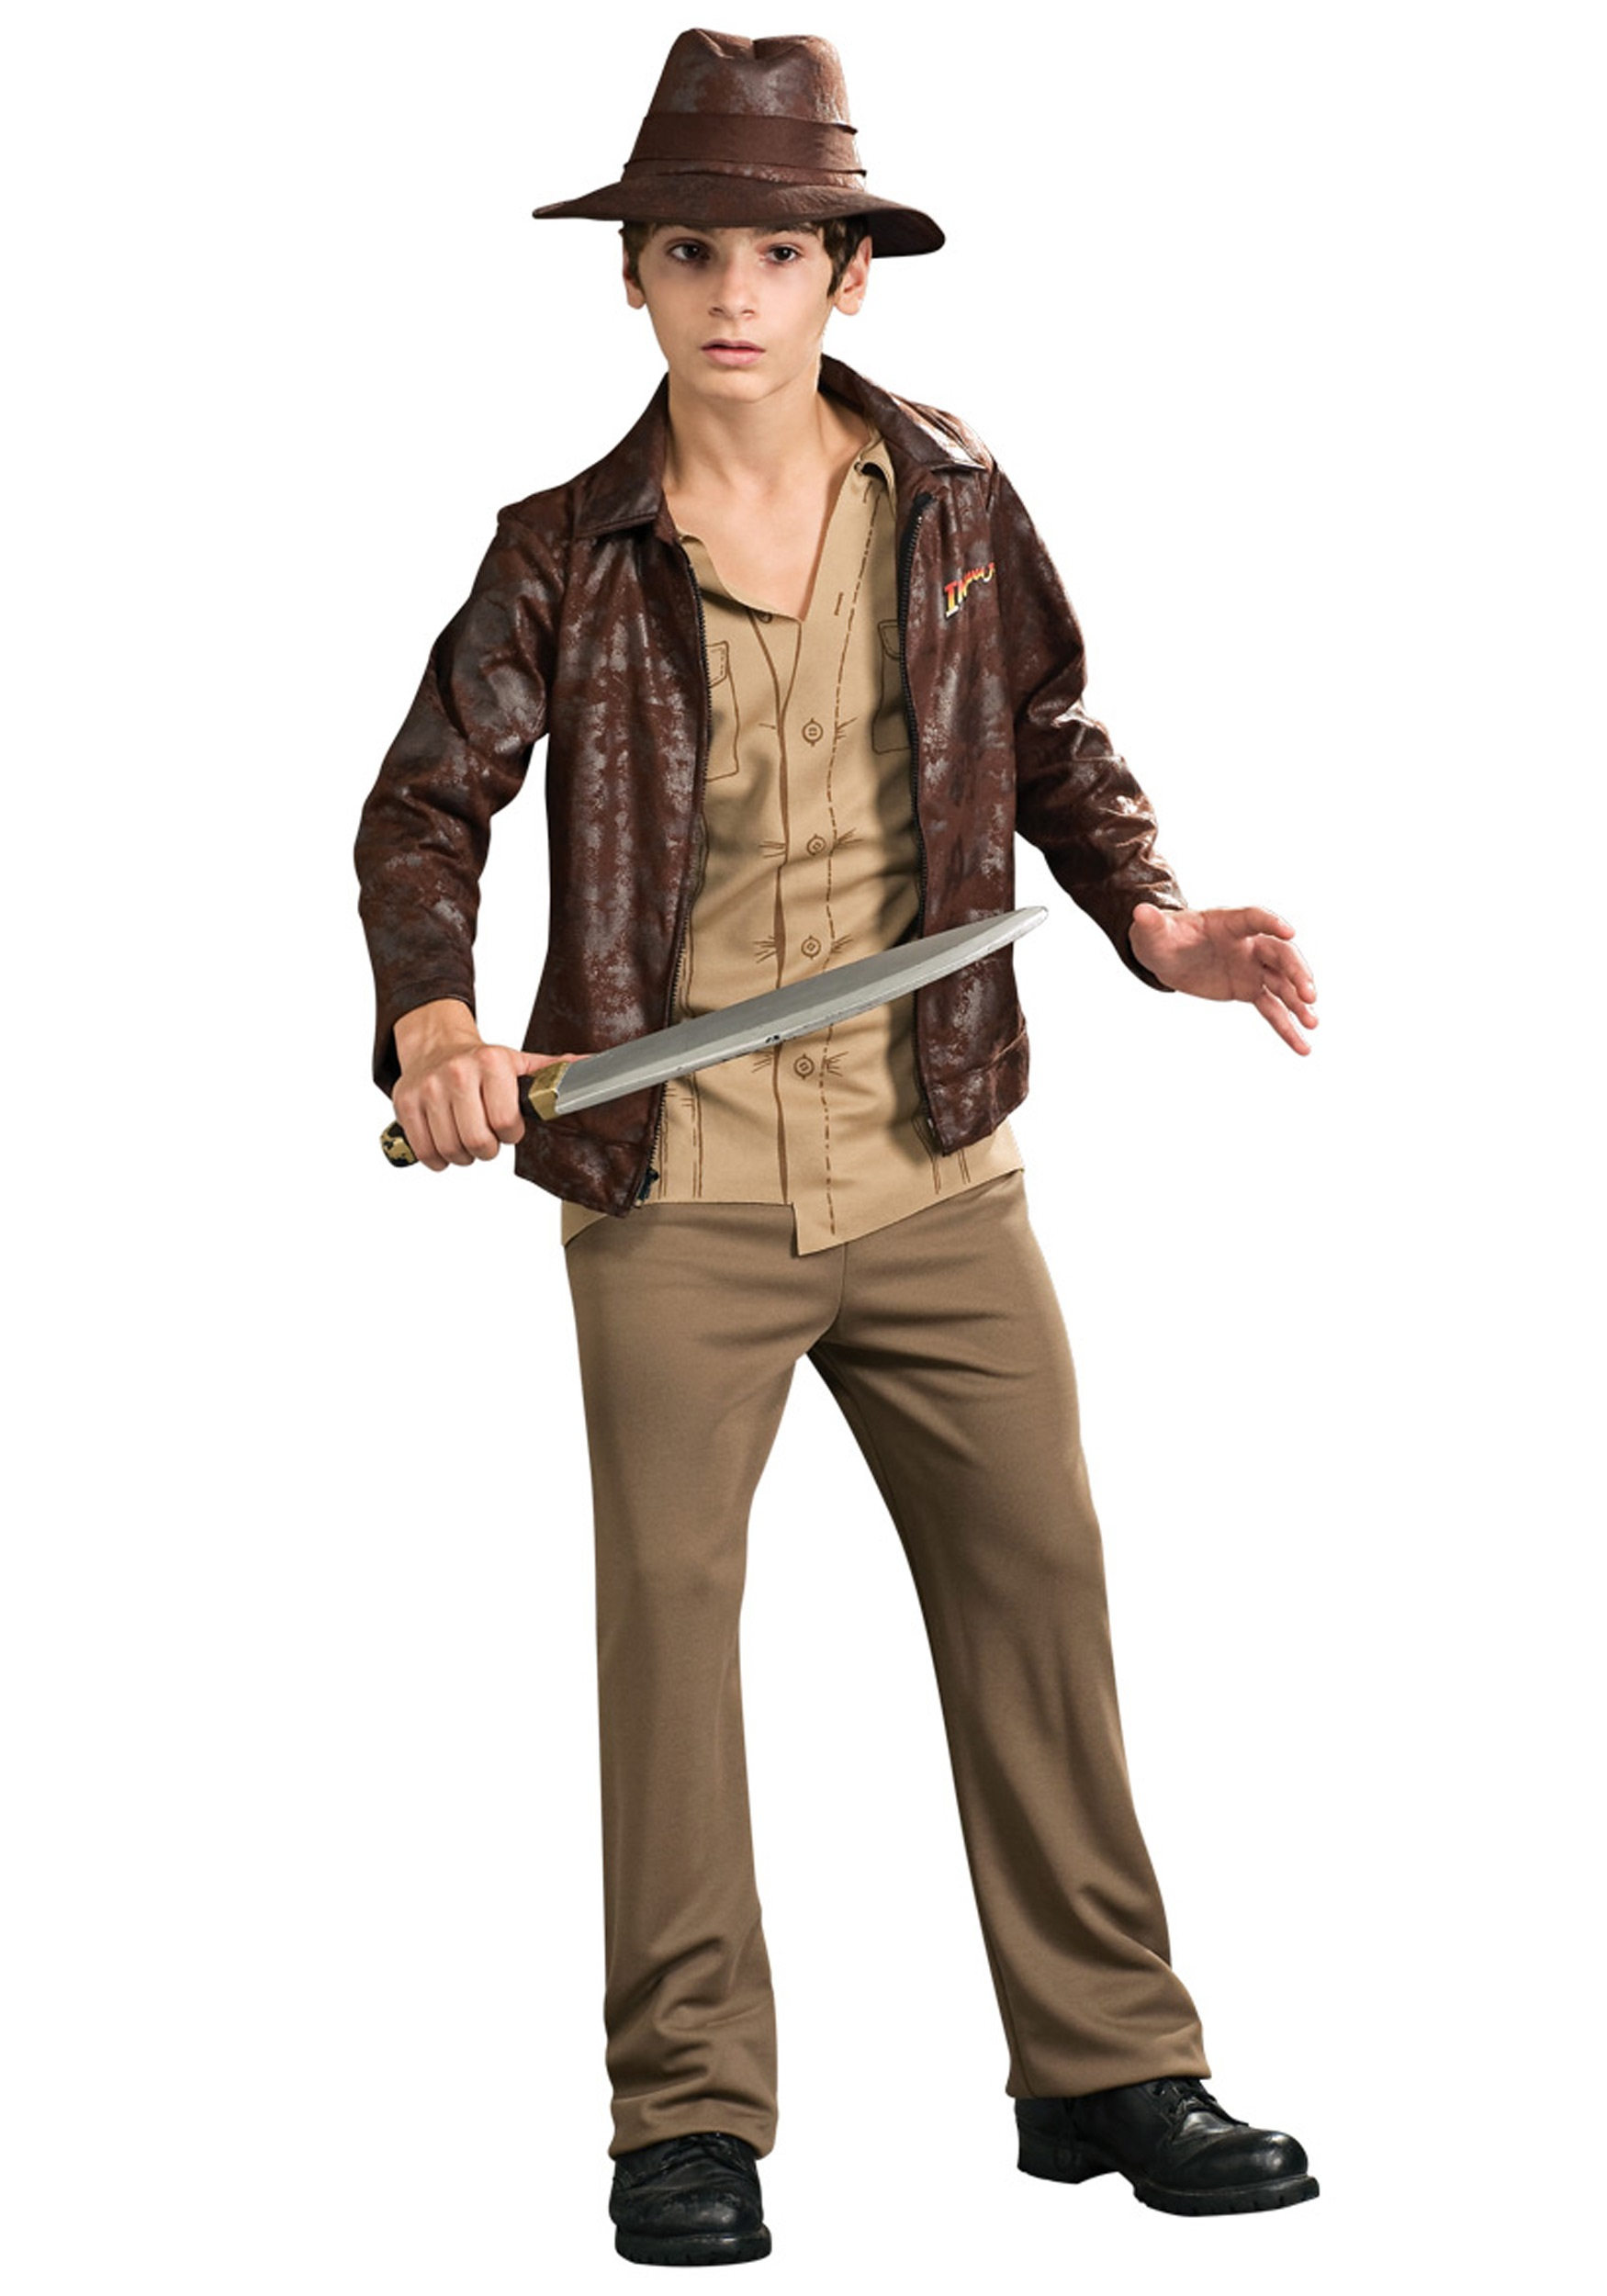 sc 1 st  Halloween Costumes & Teen Deluxe Indiana Jones Costume